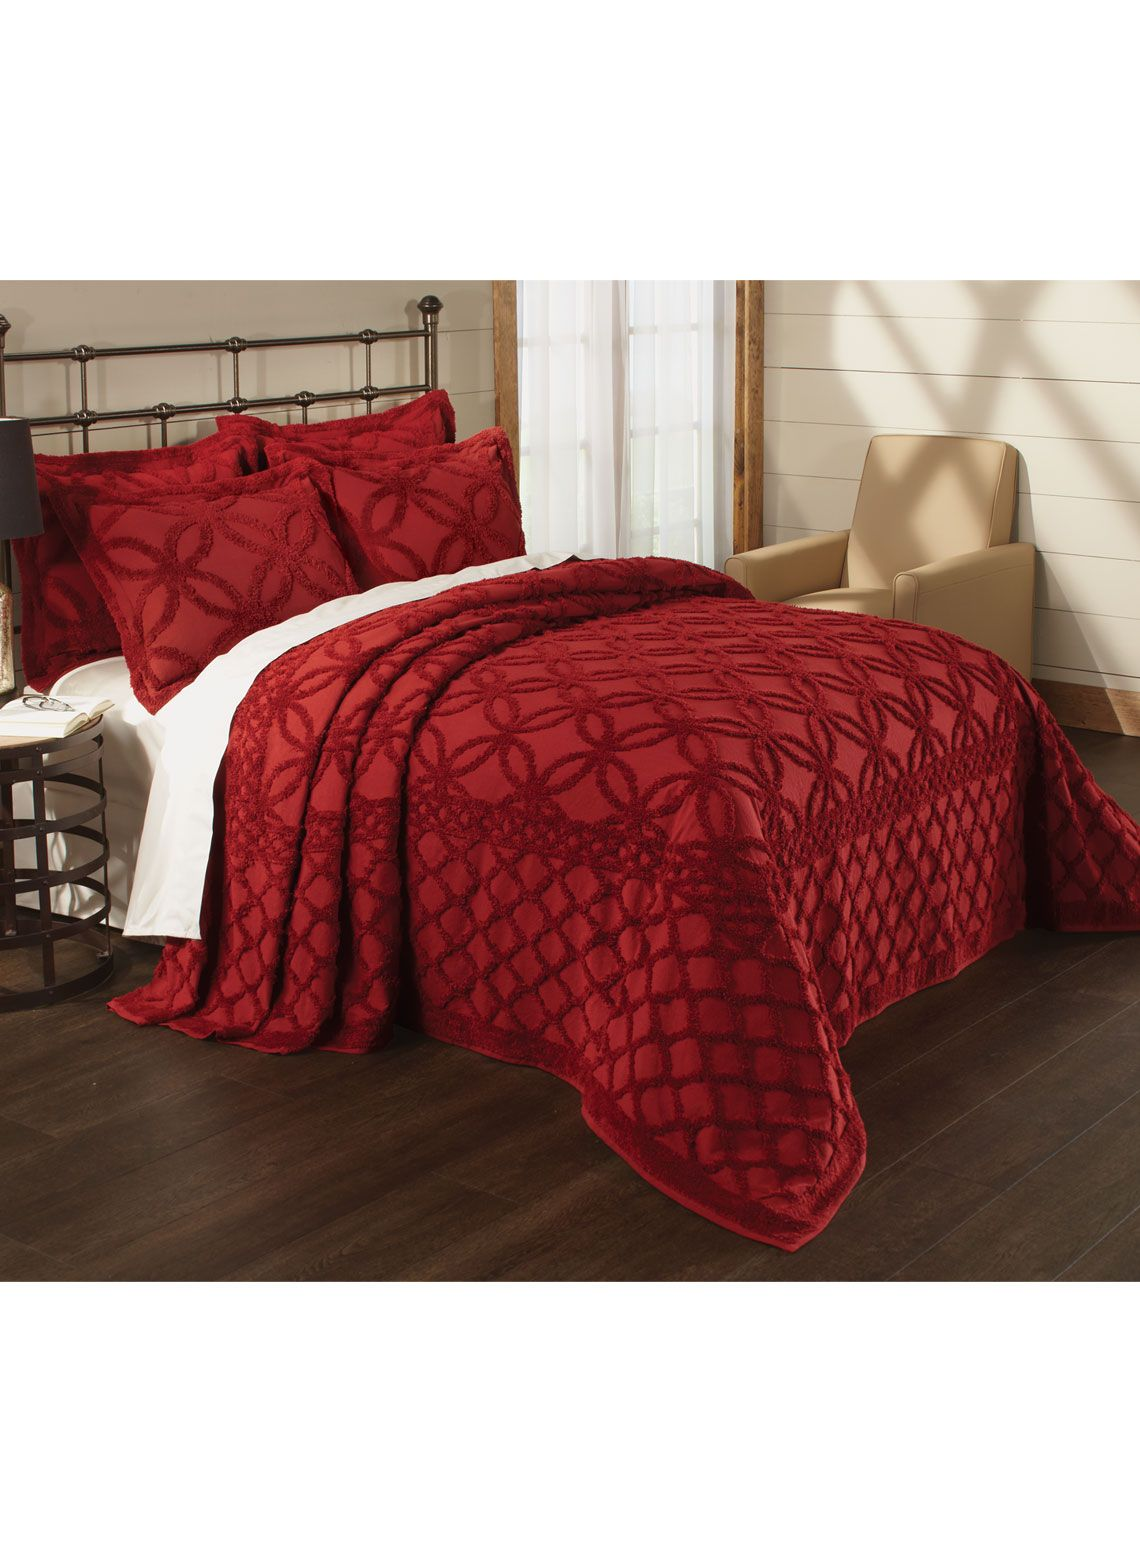 Wedding Ring Bedspread in Maroon Full